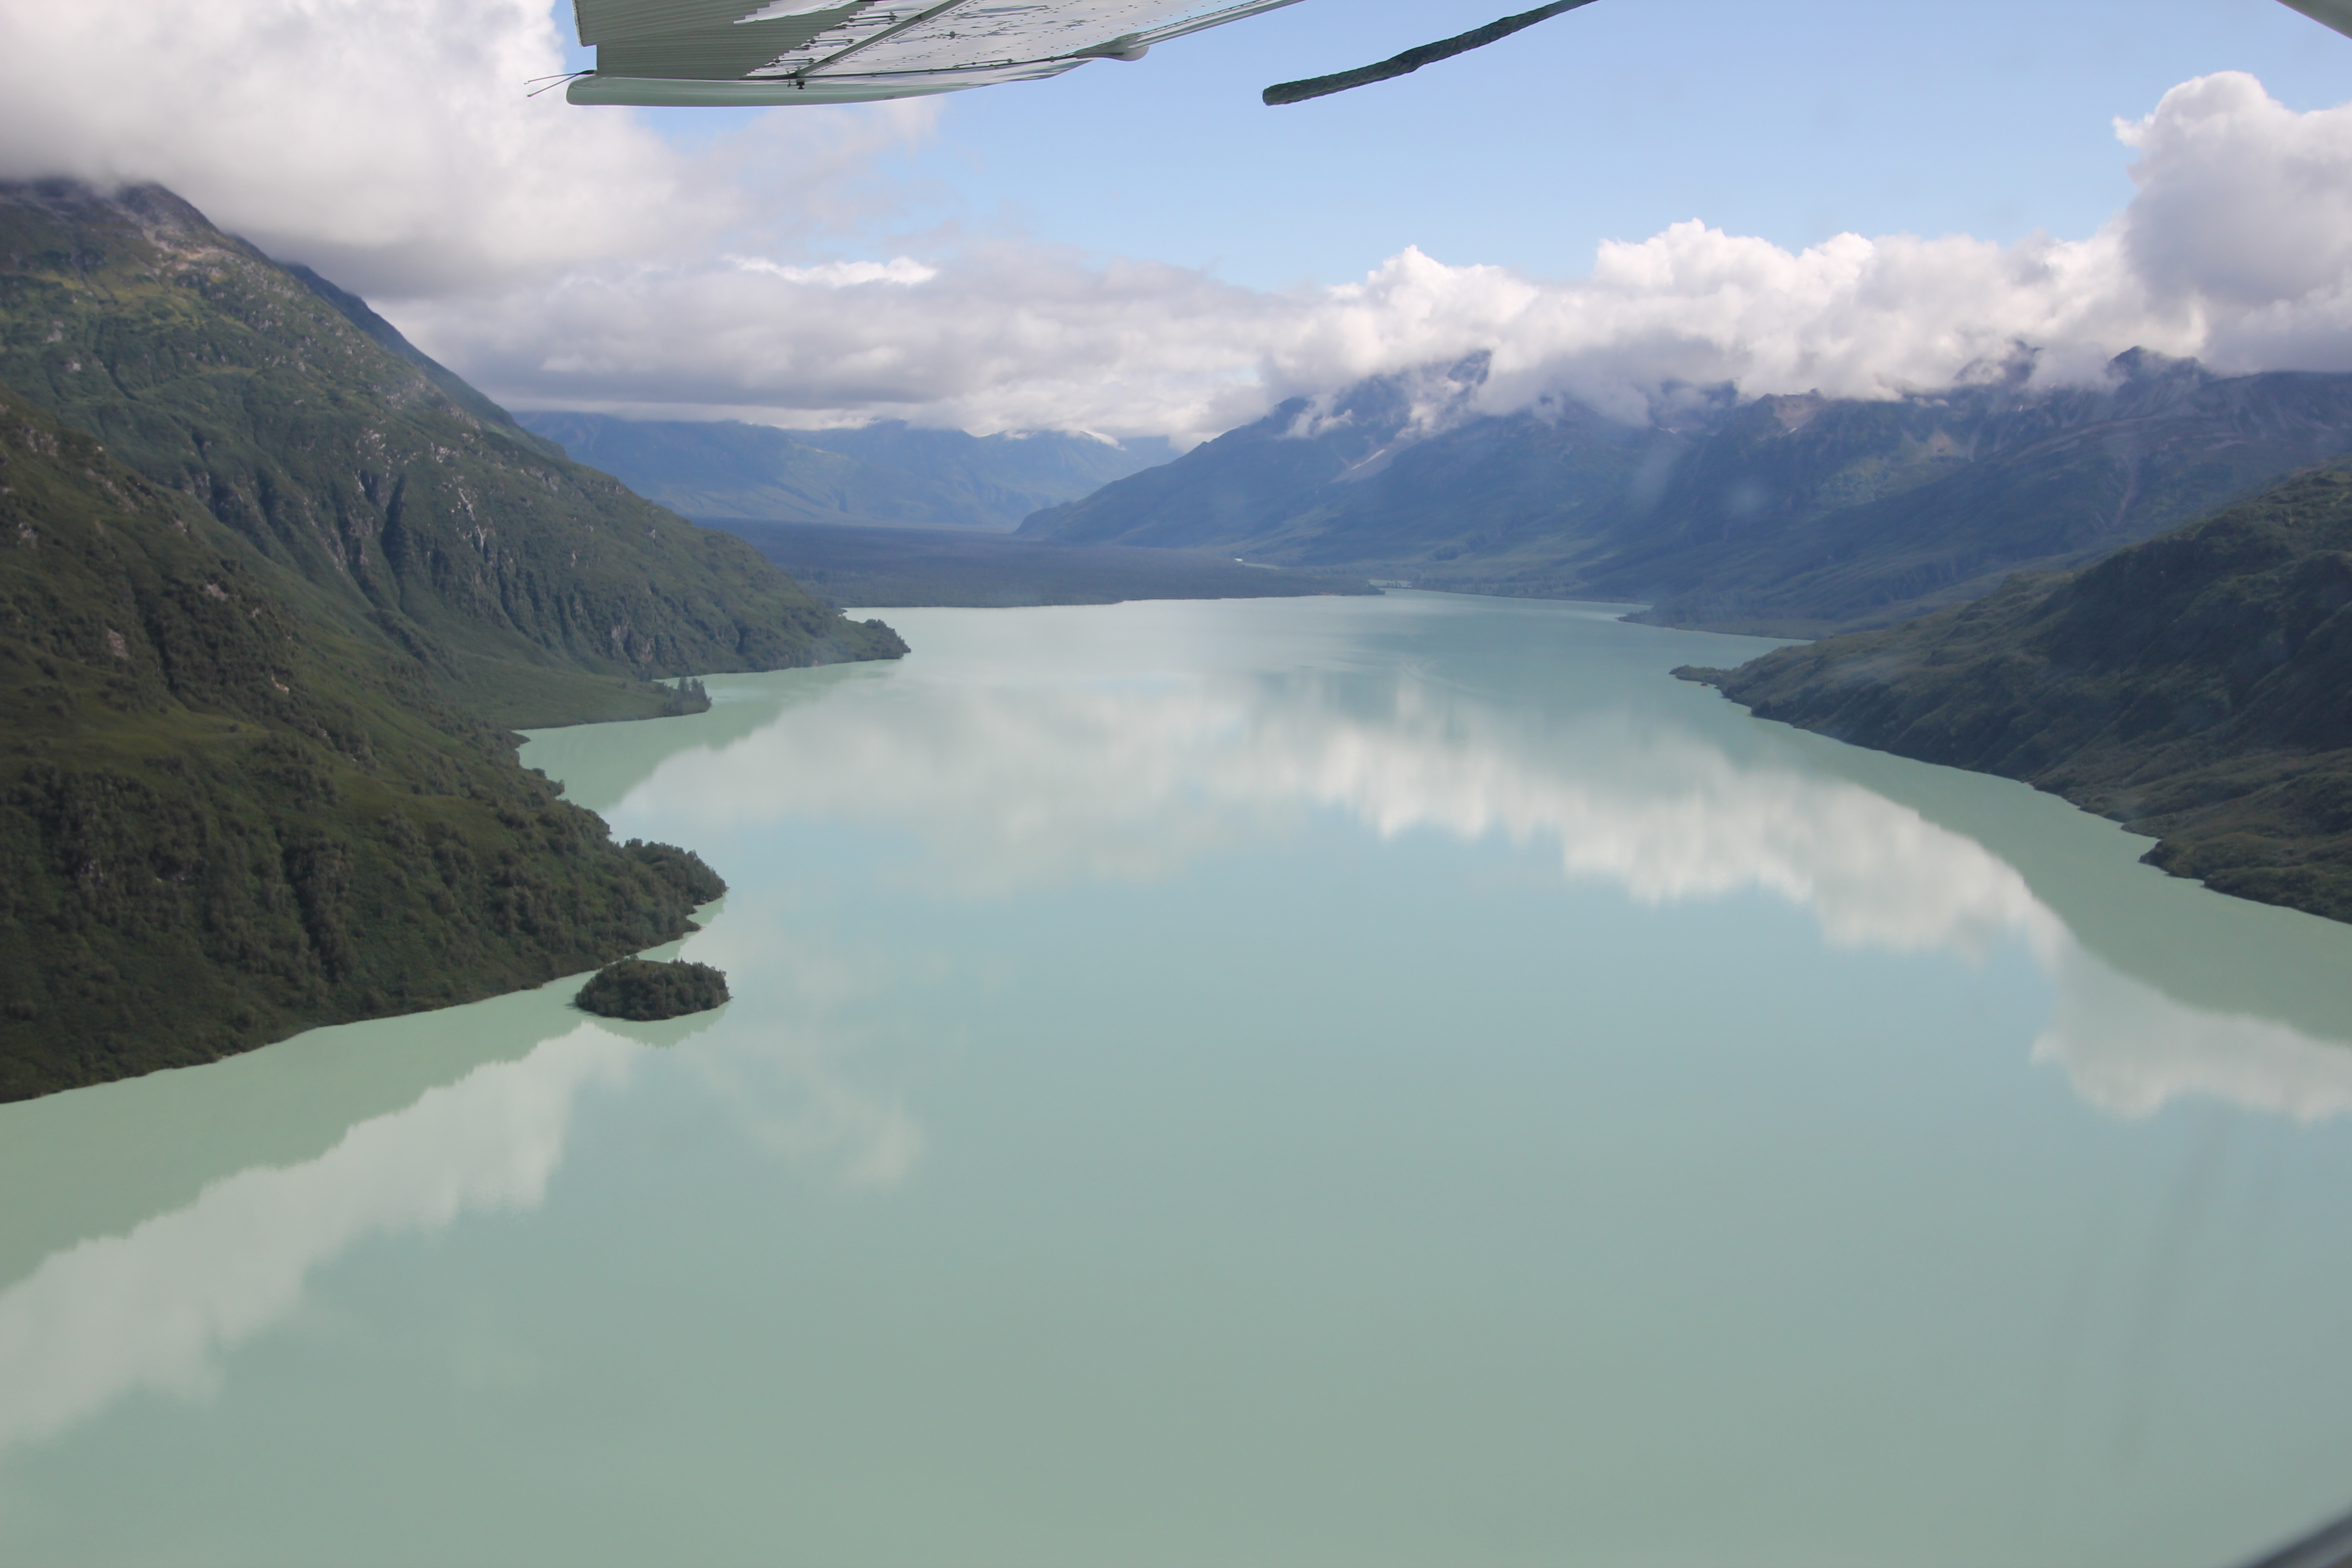 Circling at the top of Crescent Lake before heading over its calm surface and back down towards its outlet and the lower section of the Lake Fork Crescent River marked the start of the route back to Homer.